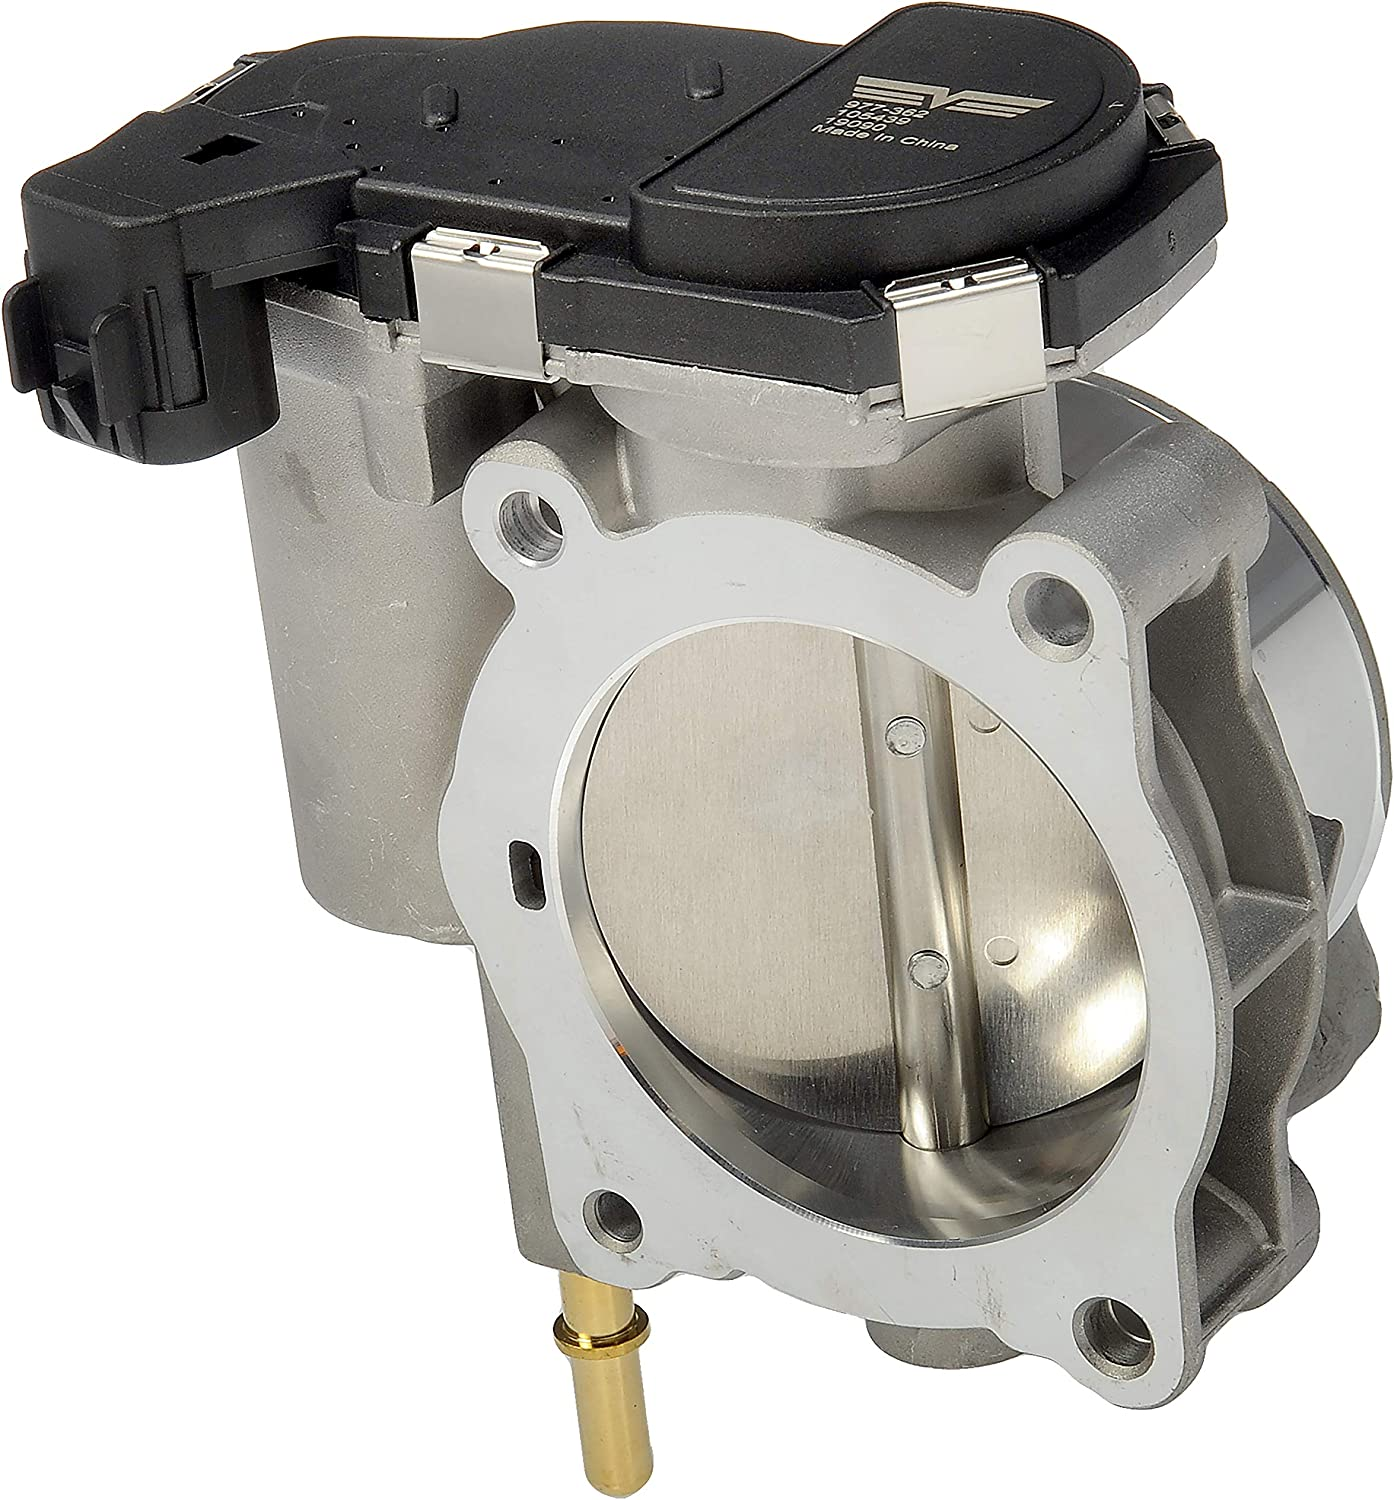 Dorman 977-362 Fuel Injection Throttle Body for Select Models